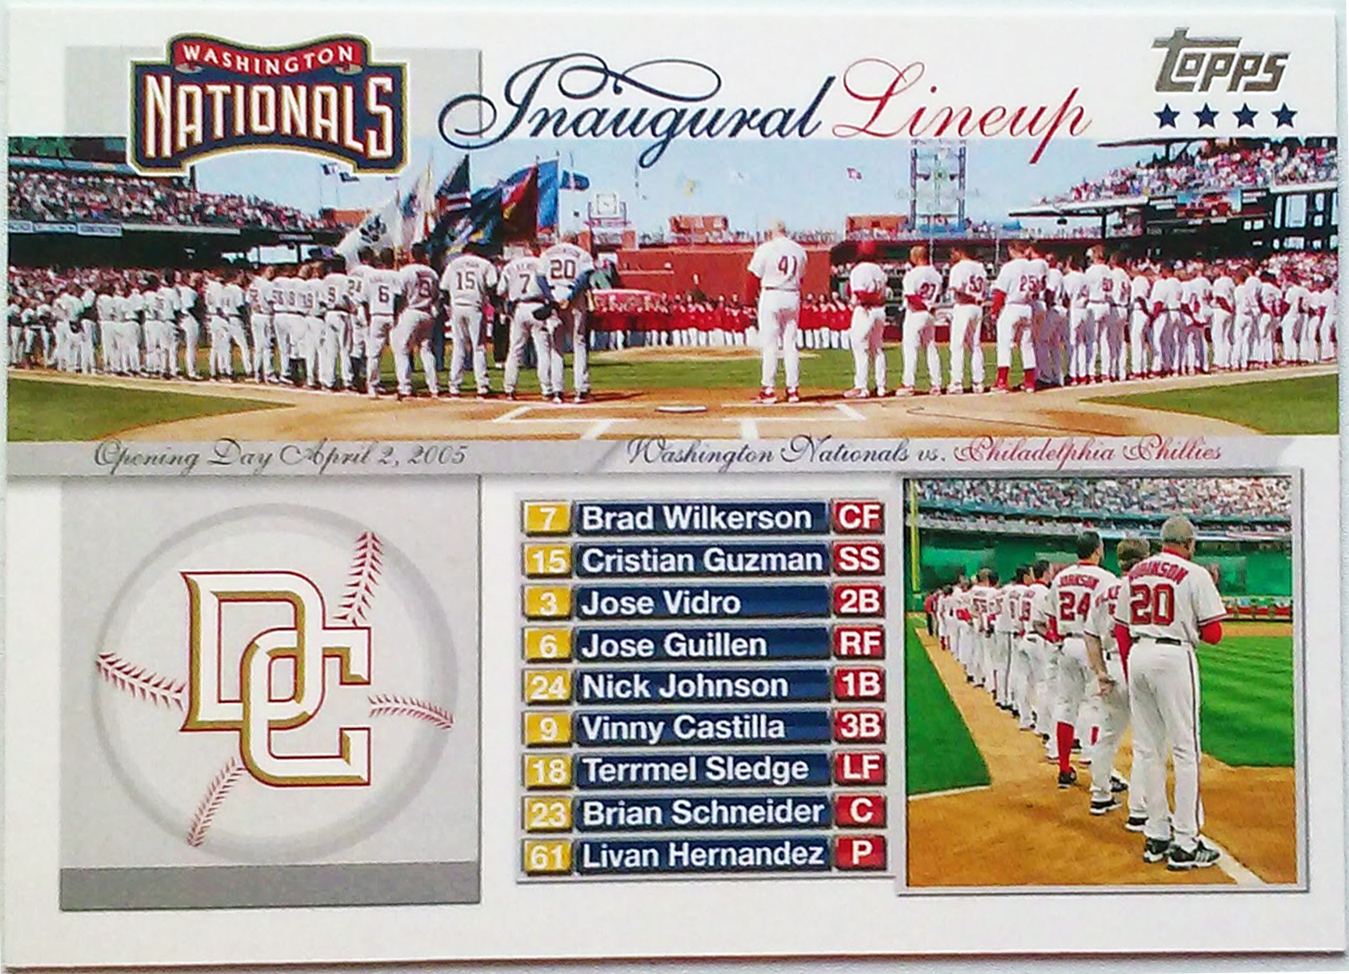 2005-Topps-Washington-Nationals-first-ga